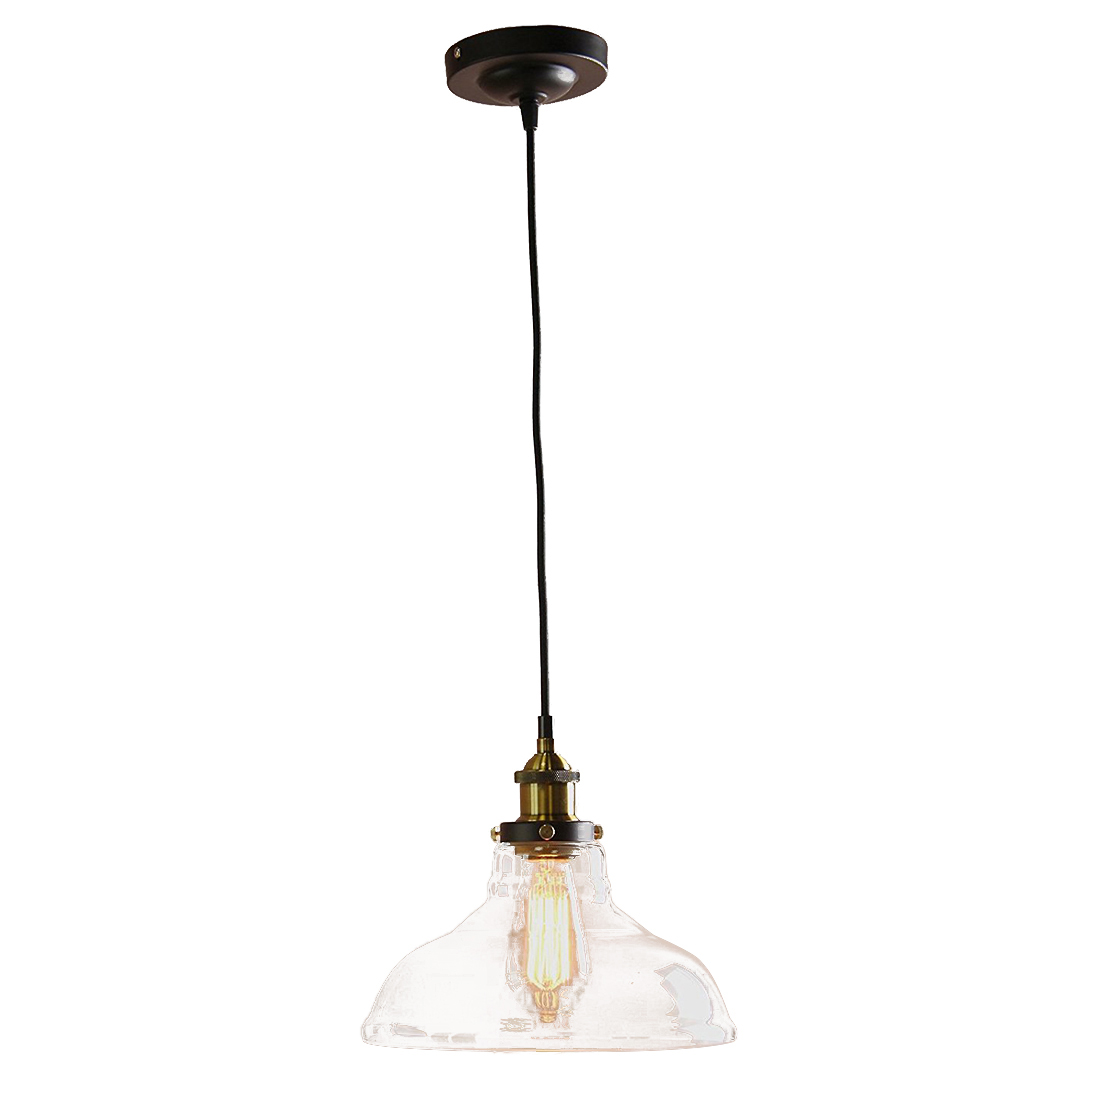 Modern Vintage Amber Industrial 1 Light Iron Body Glass Shade Loft Coffee Bar Kitchen cover Chandeliers Hanging Pendant Lamp